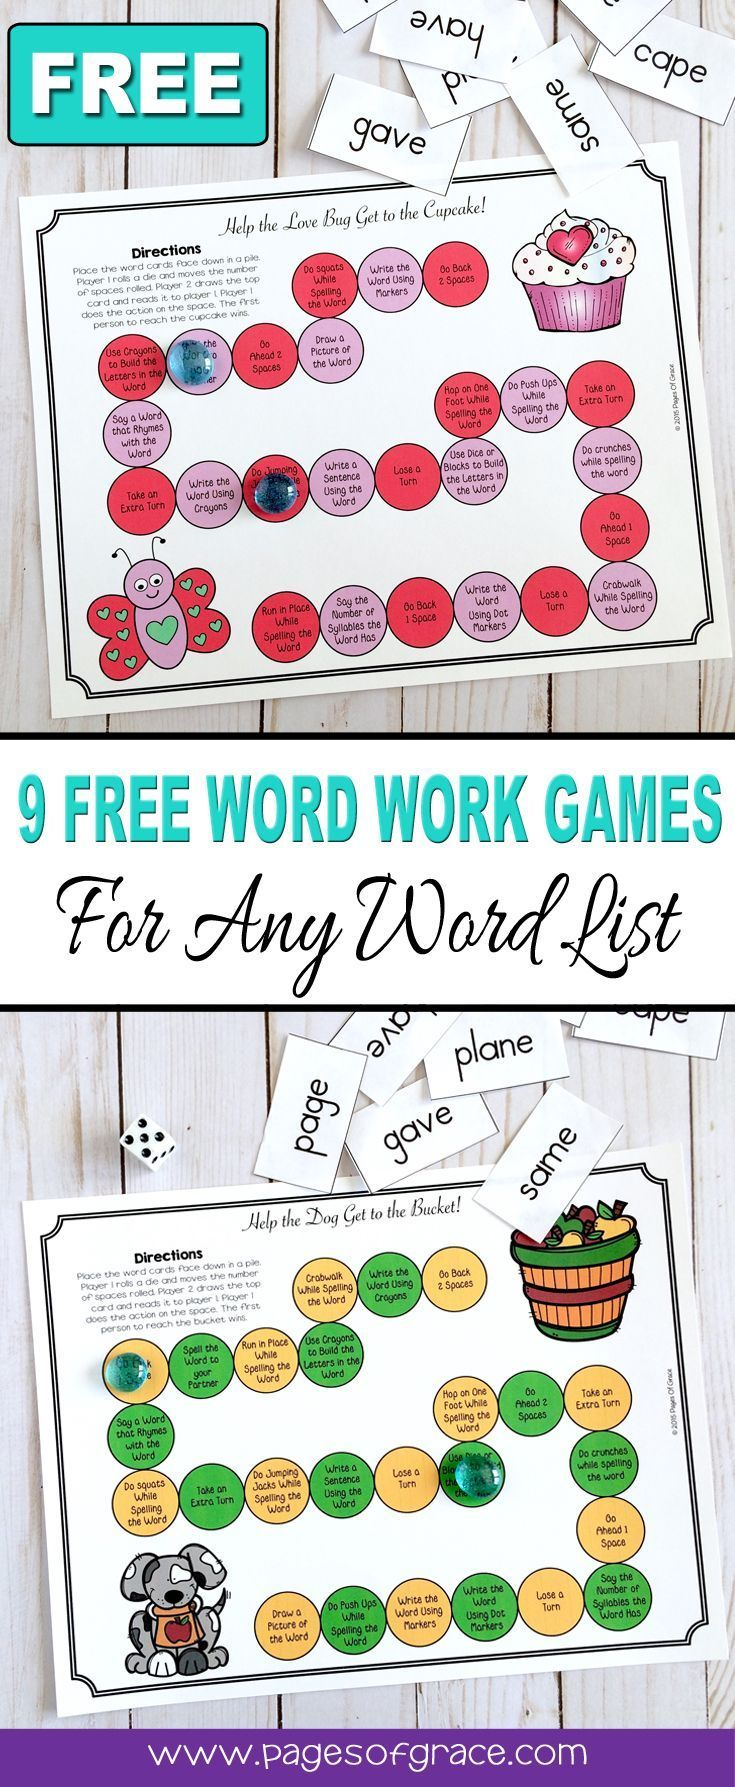 Worksheet Free Phonic Games Online 1000 ideas about free phonics games on pinterest help your students master any word list and have some holiday seasonal fun with this